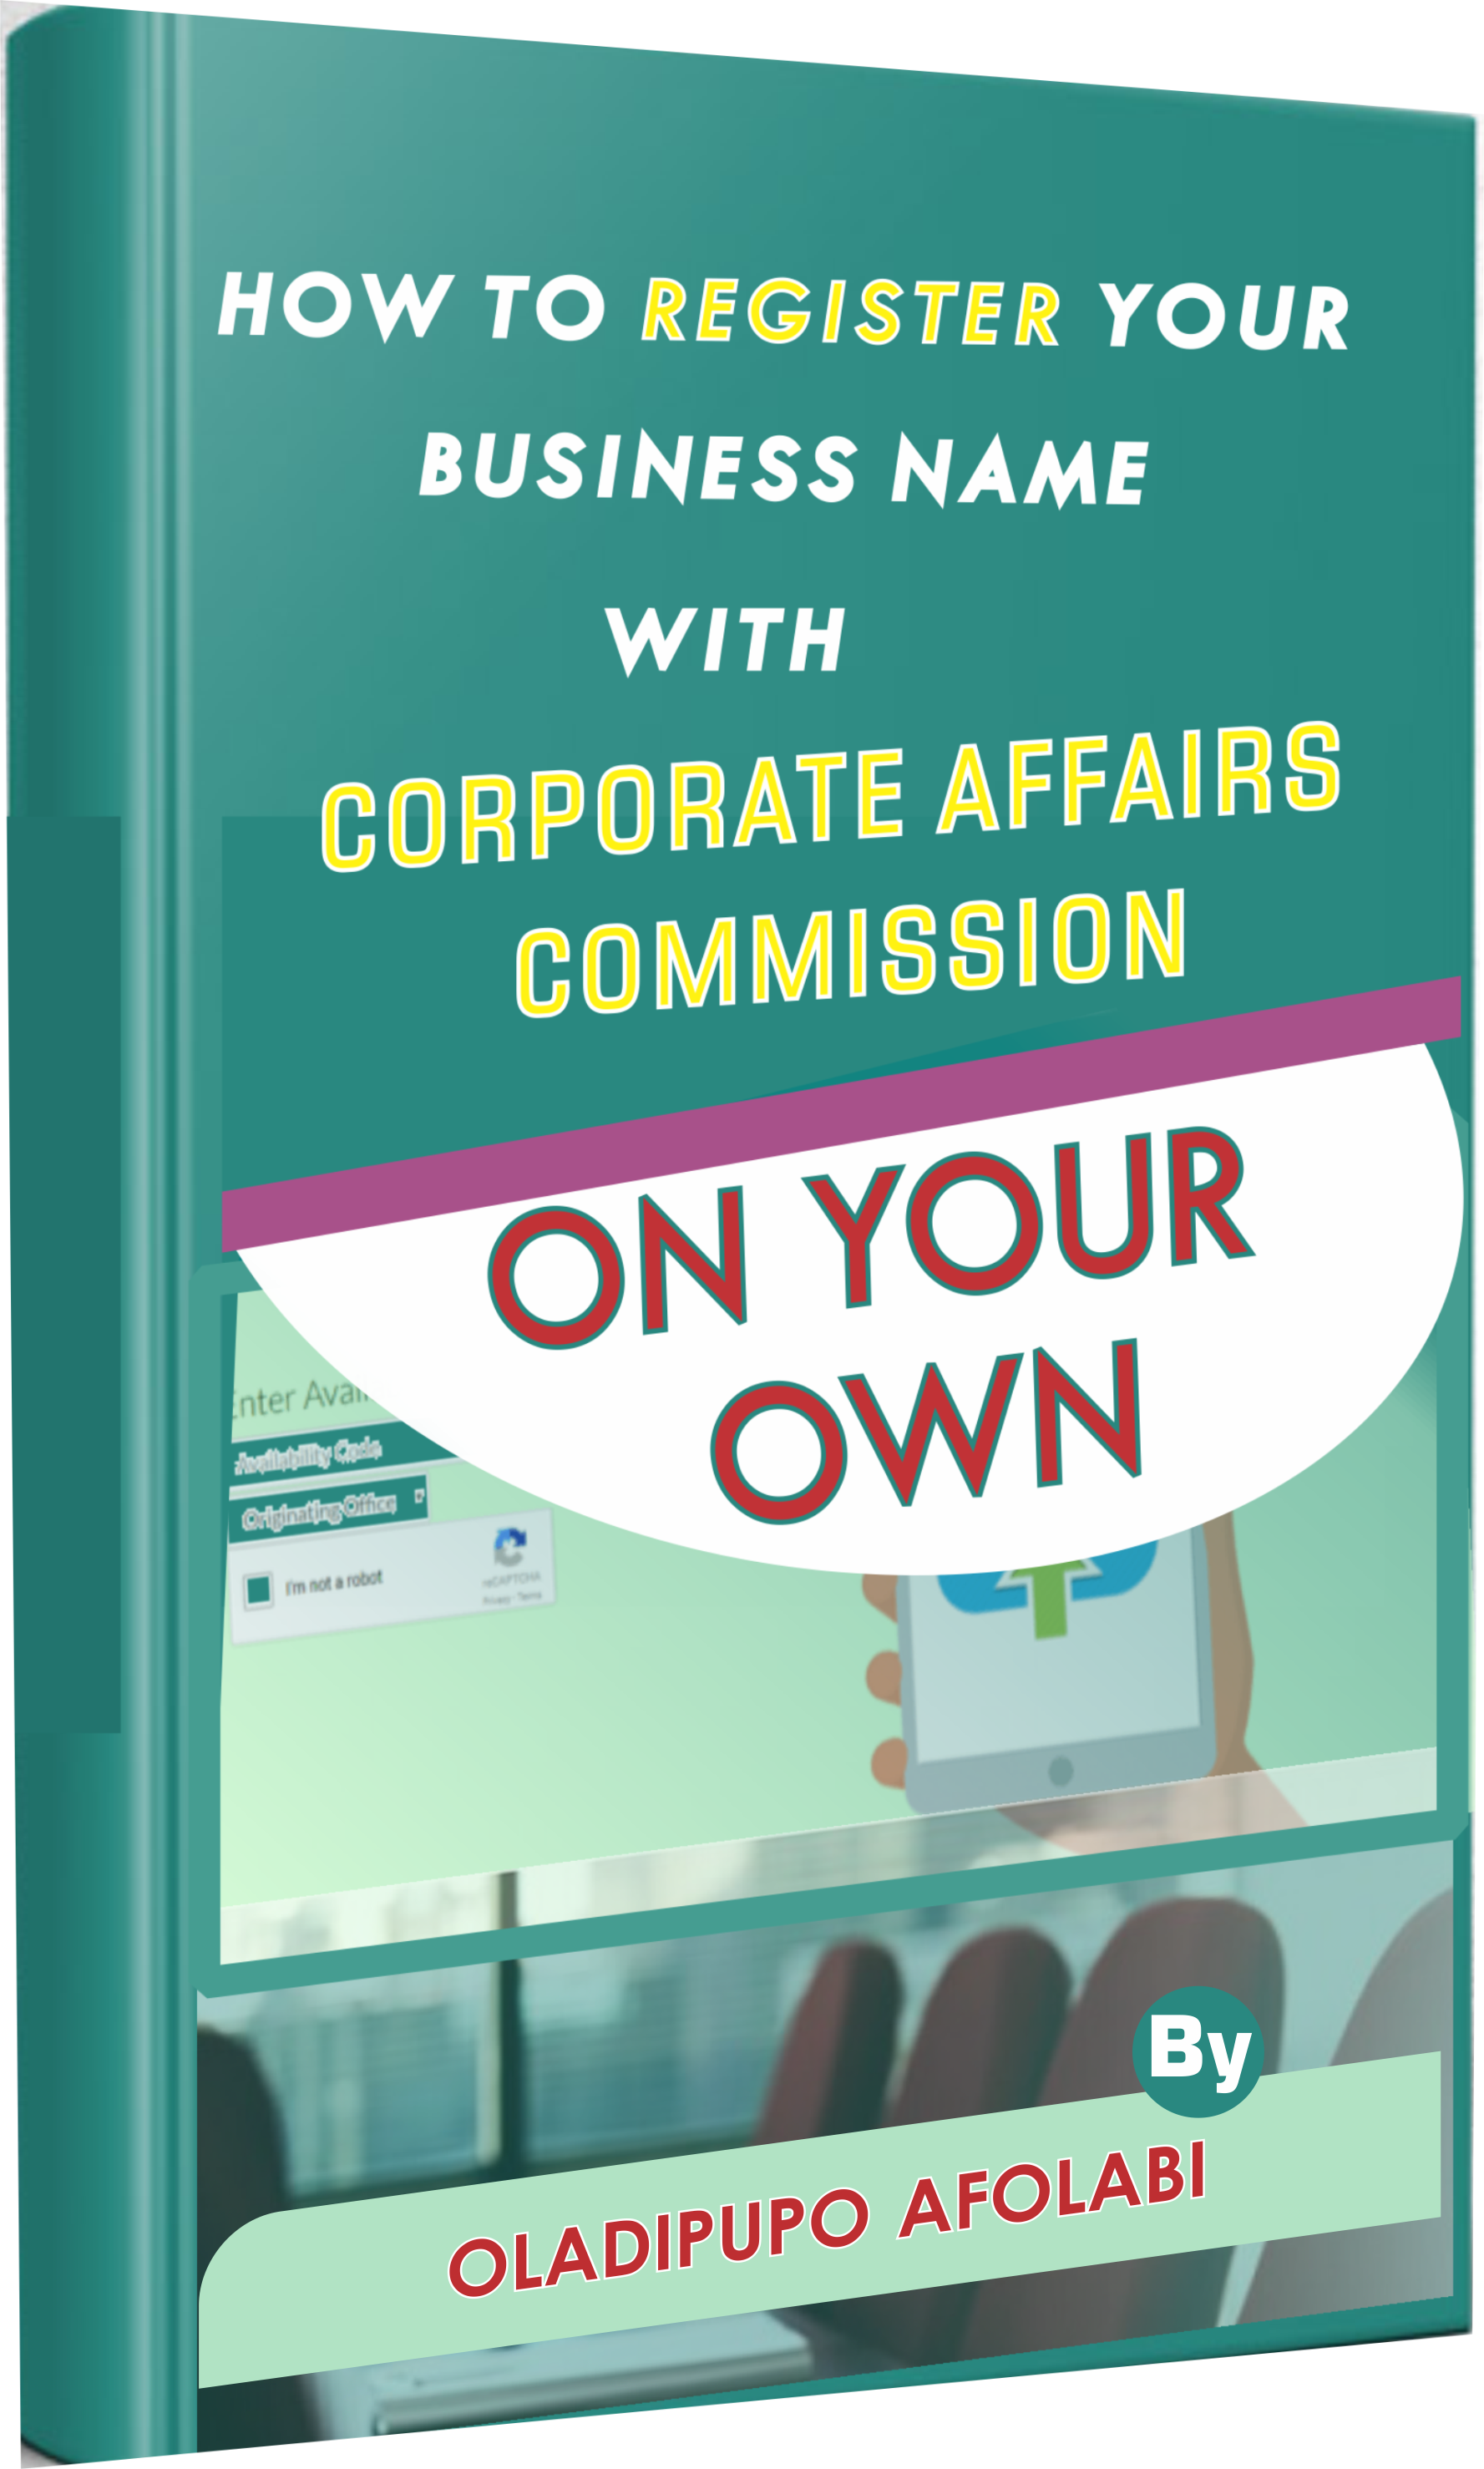 How to Register Your Business Name With Corporate Affairs Commission of Nigeria